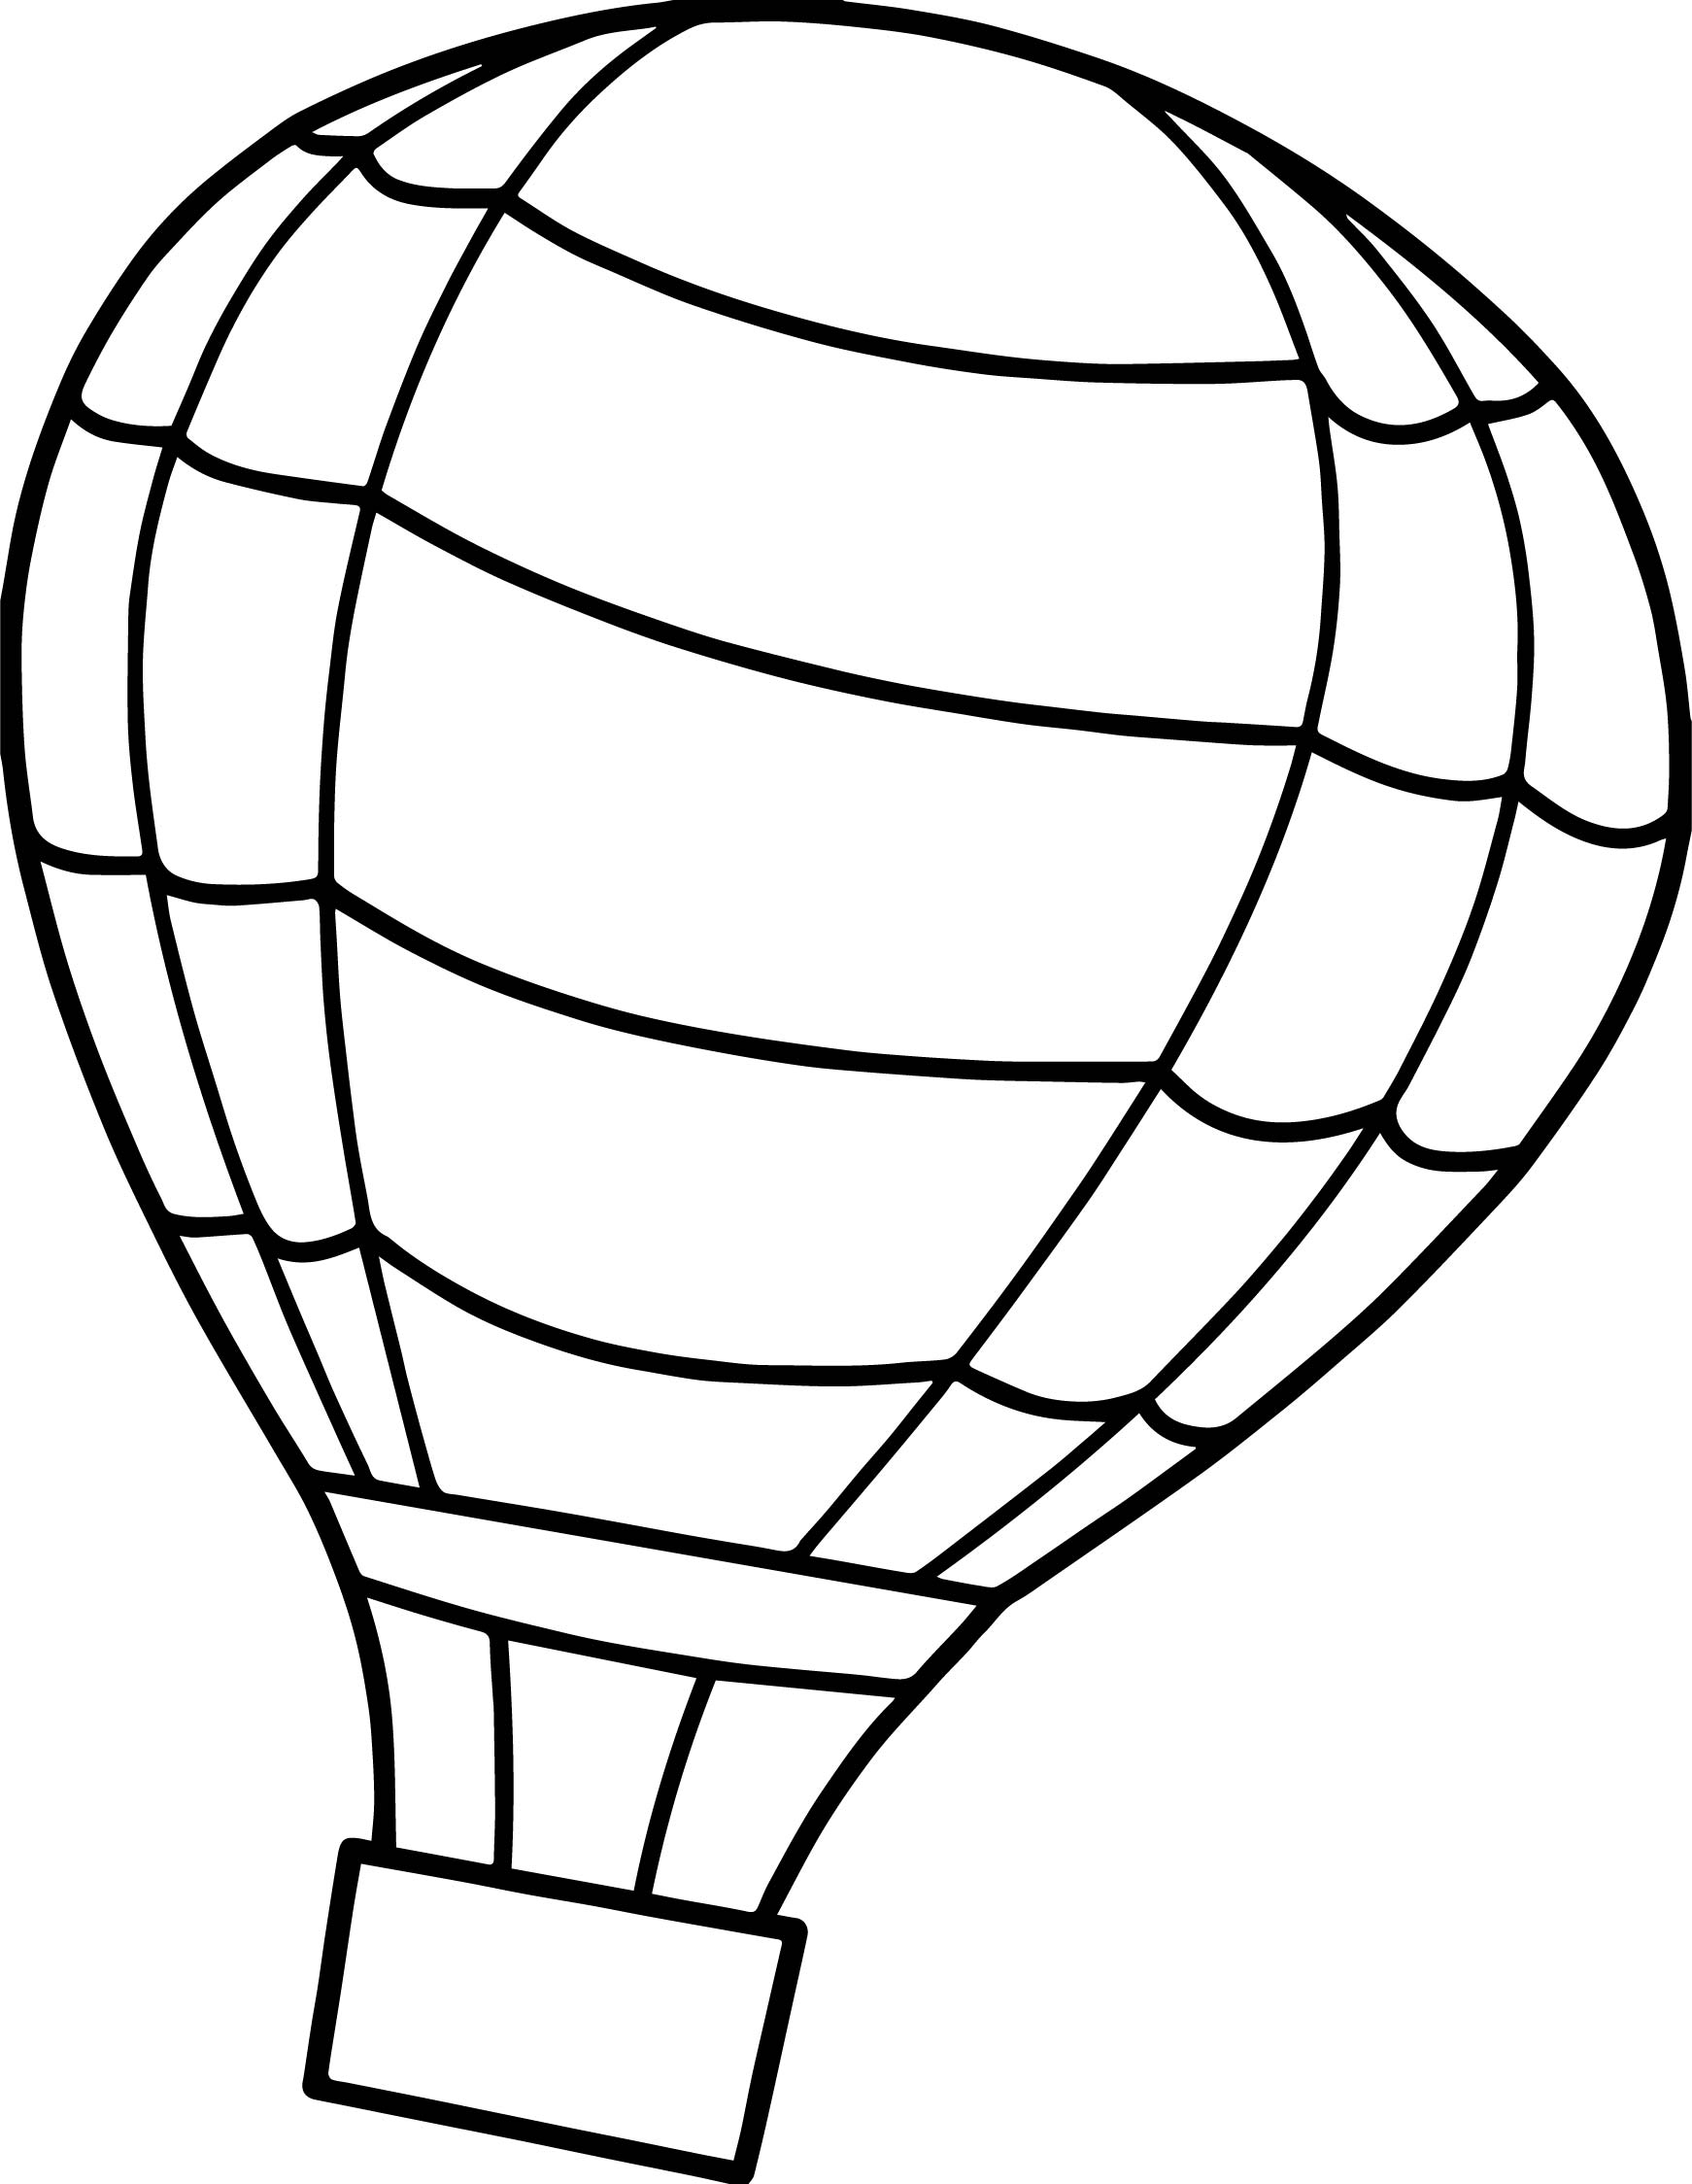 Flip air balloon coloring page for Balloon coloring pages